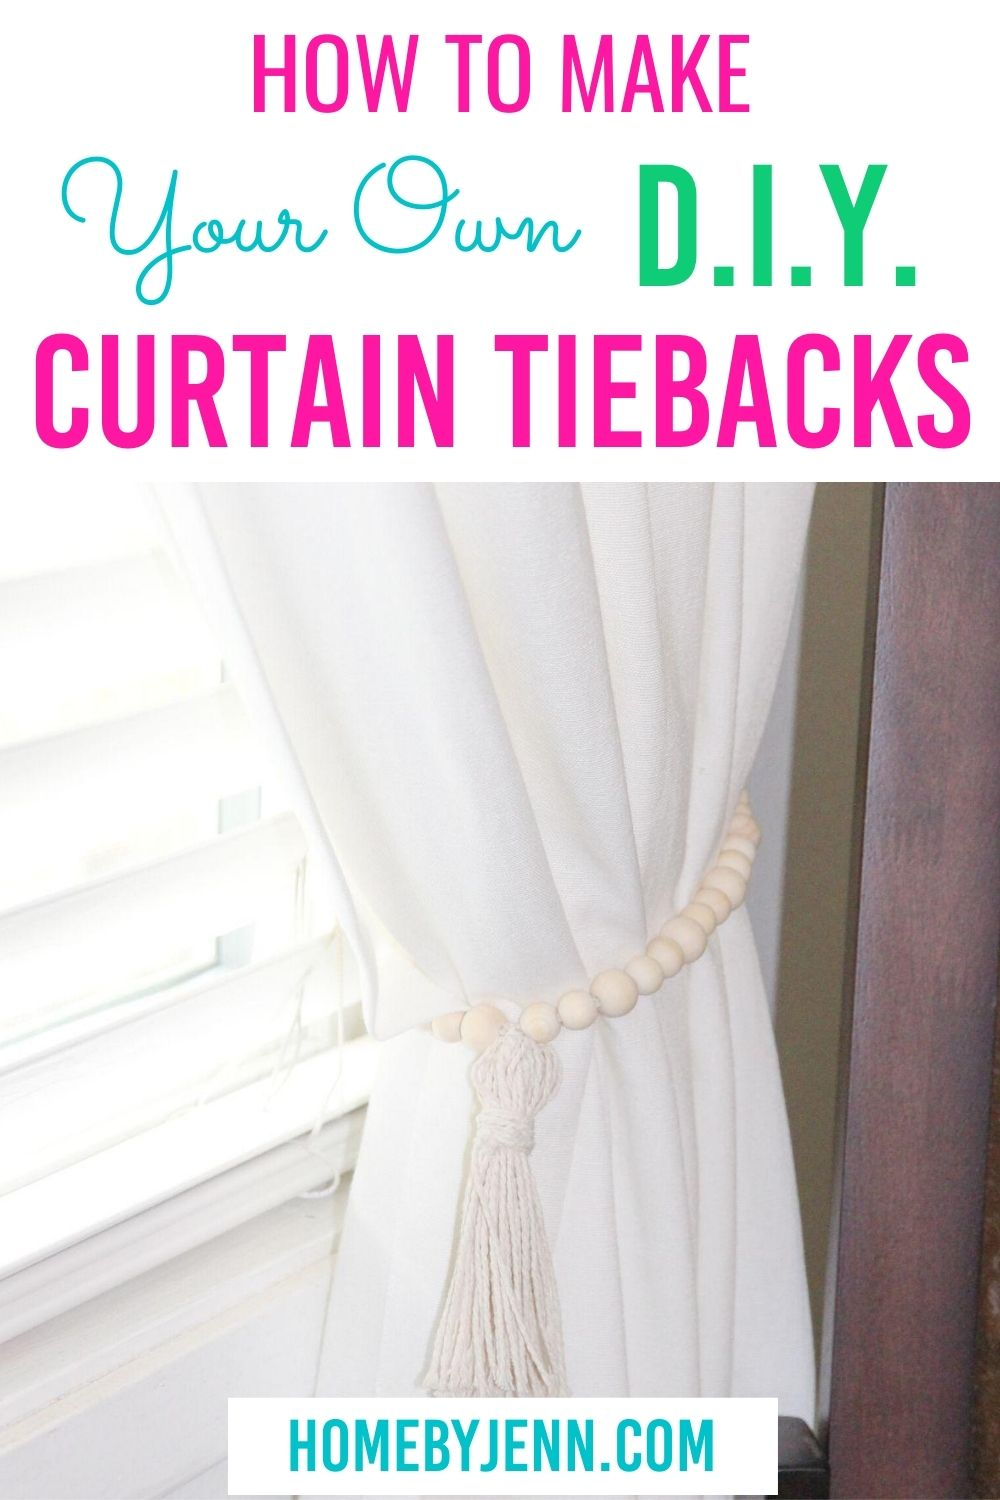 Very simple DIY Curtain Tie Backs that take only minutes to make. Check out how to make curtain tiebacks with this video tutorial. This post shows you how you can make this a zero-cost project. via @homebyjenn